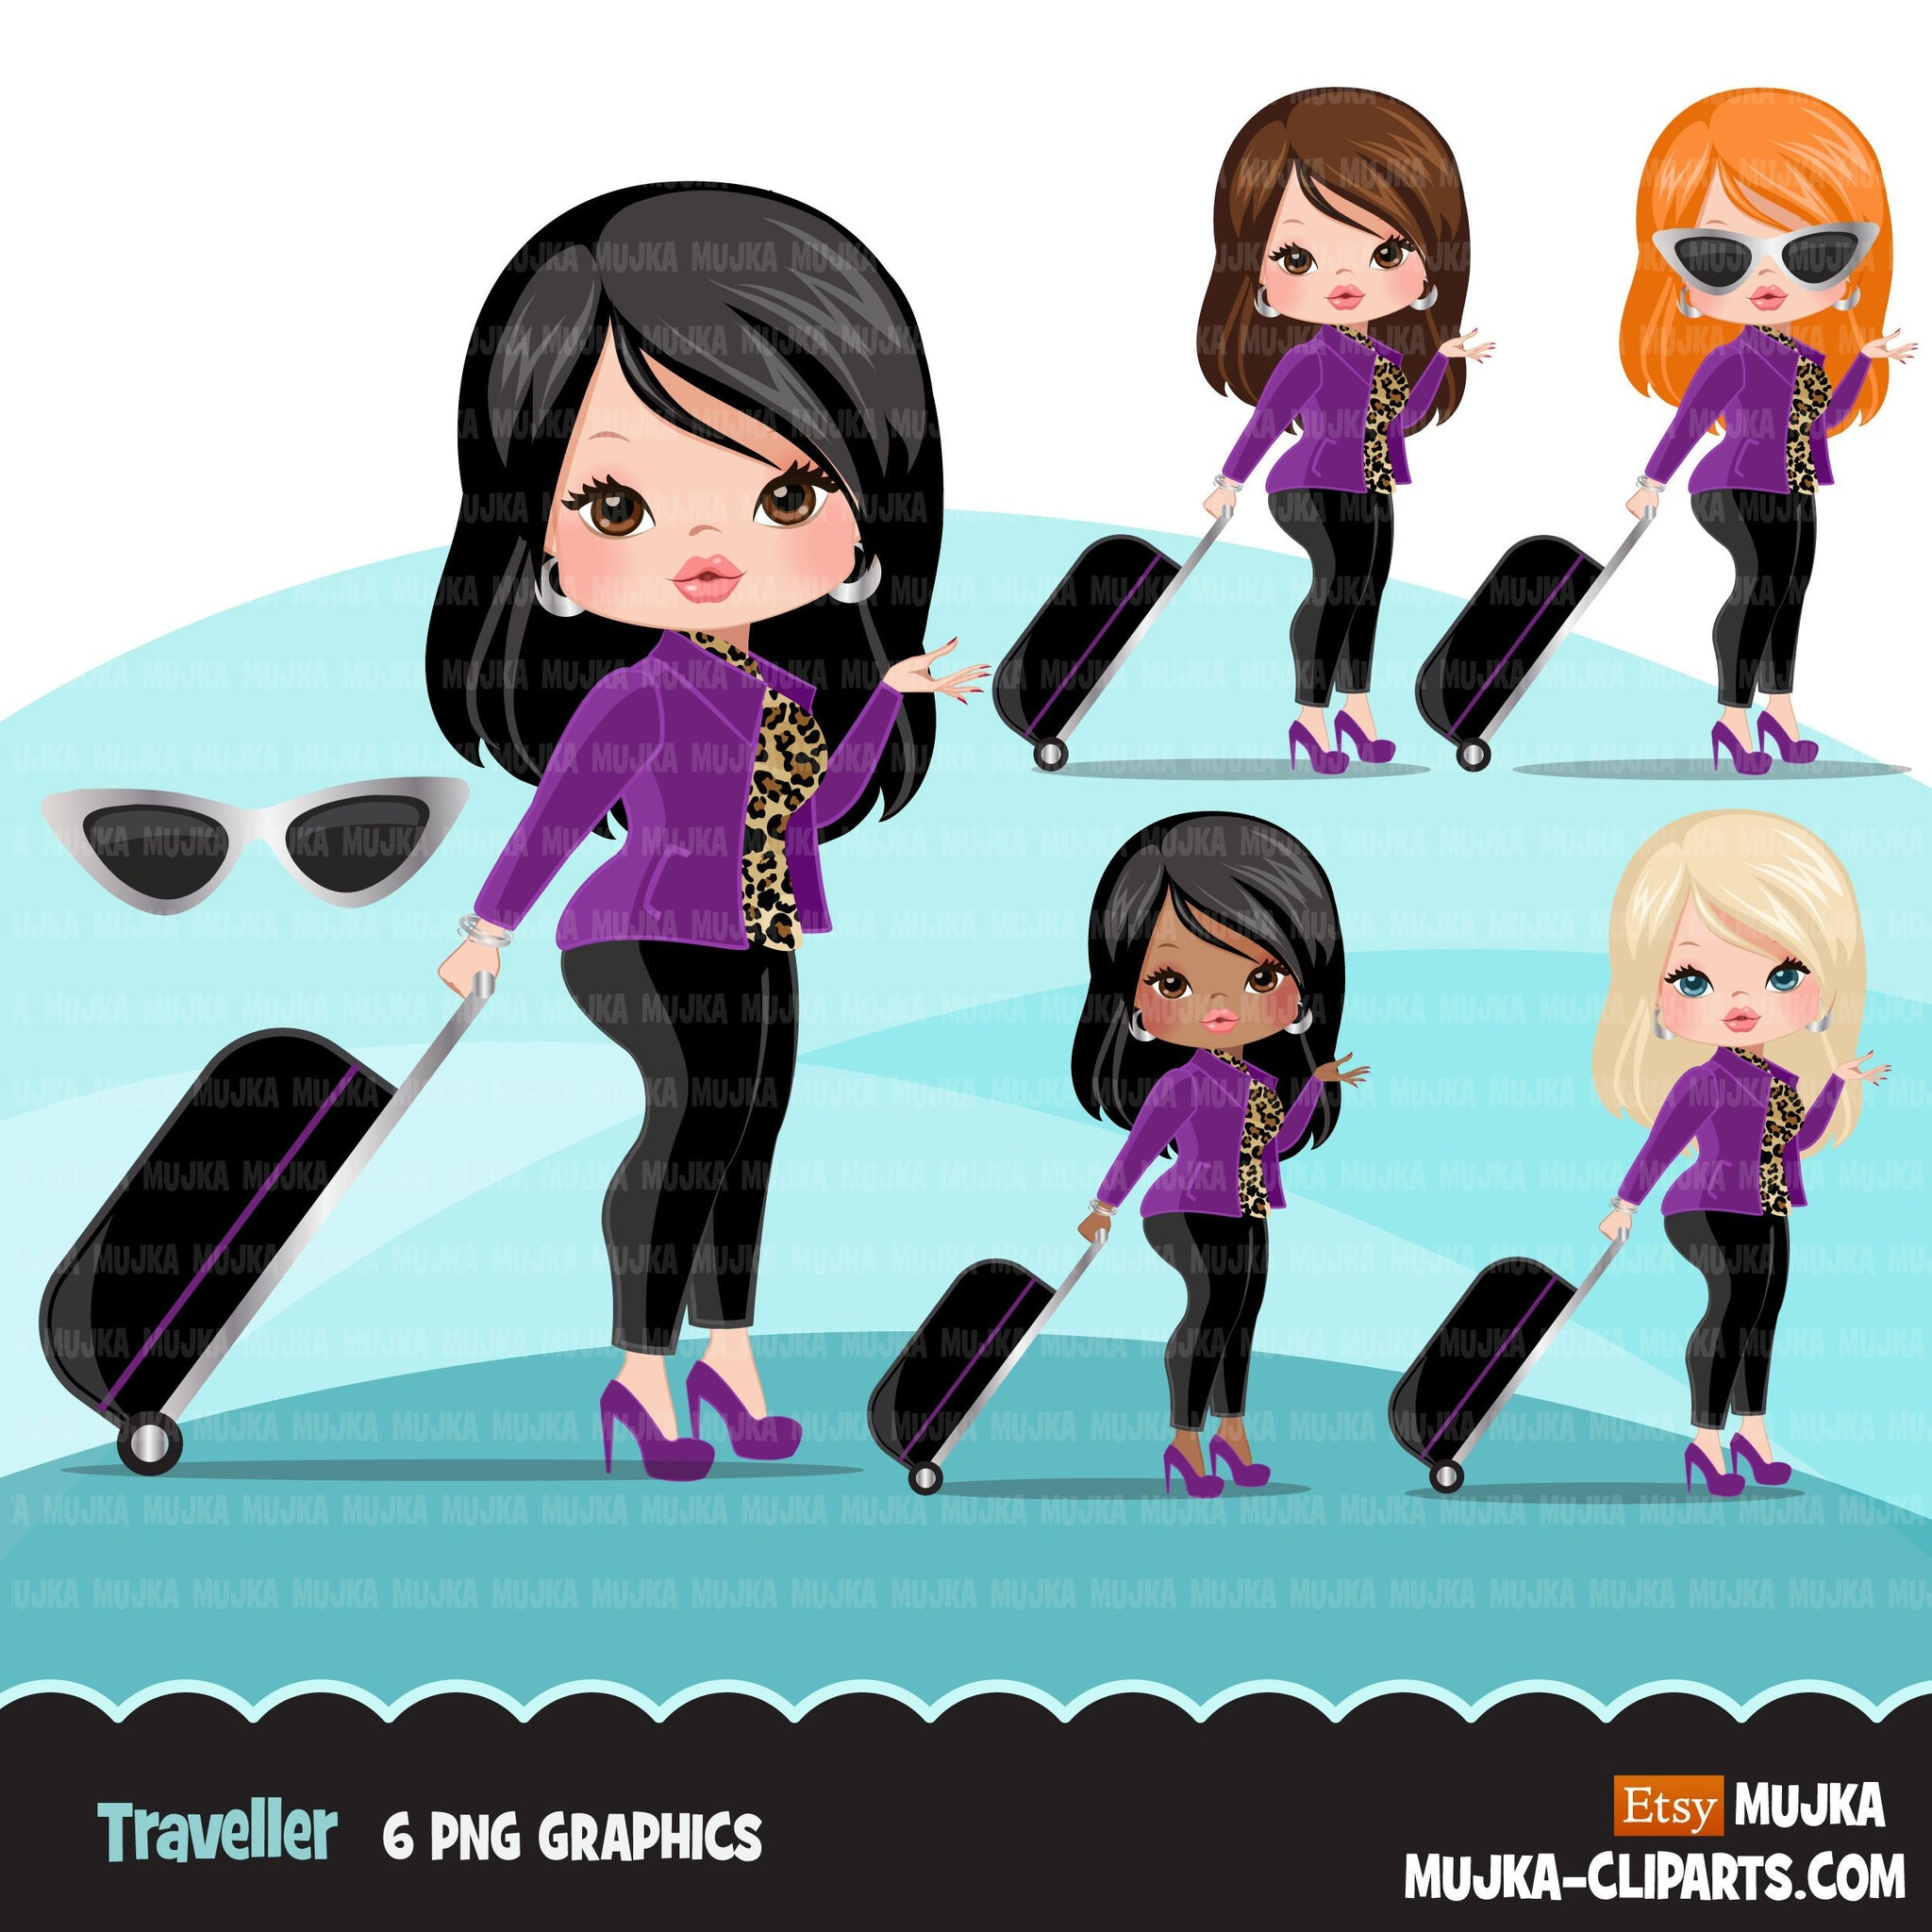 Travelling girl clipart avatar with suitcase, print and cut, shop logo boss girl clip art purple leopard skin graphics